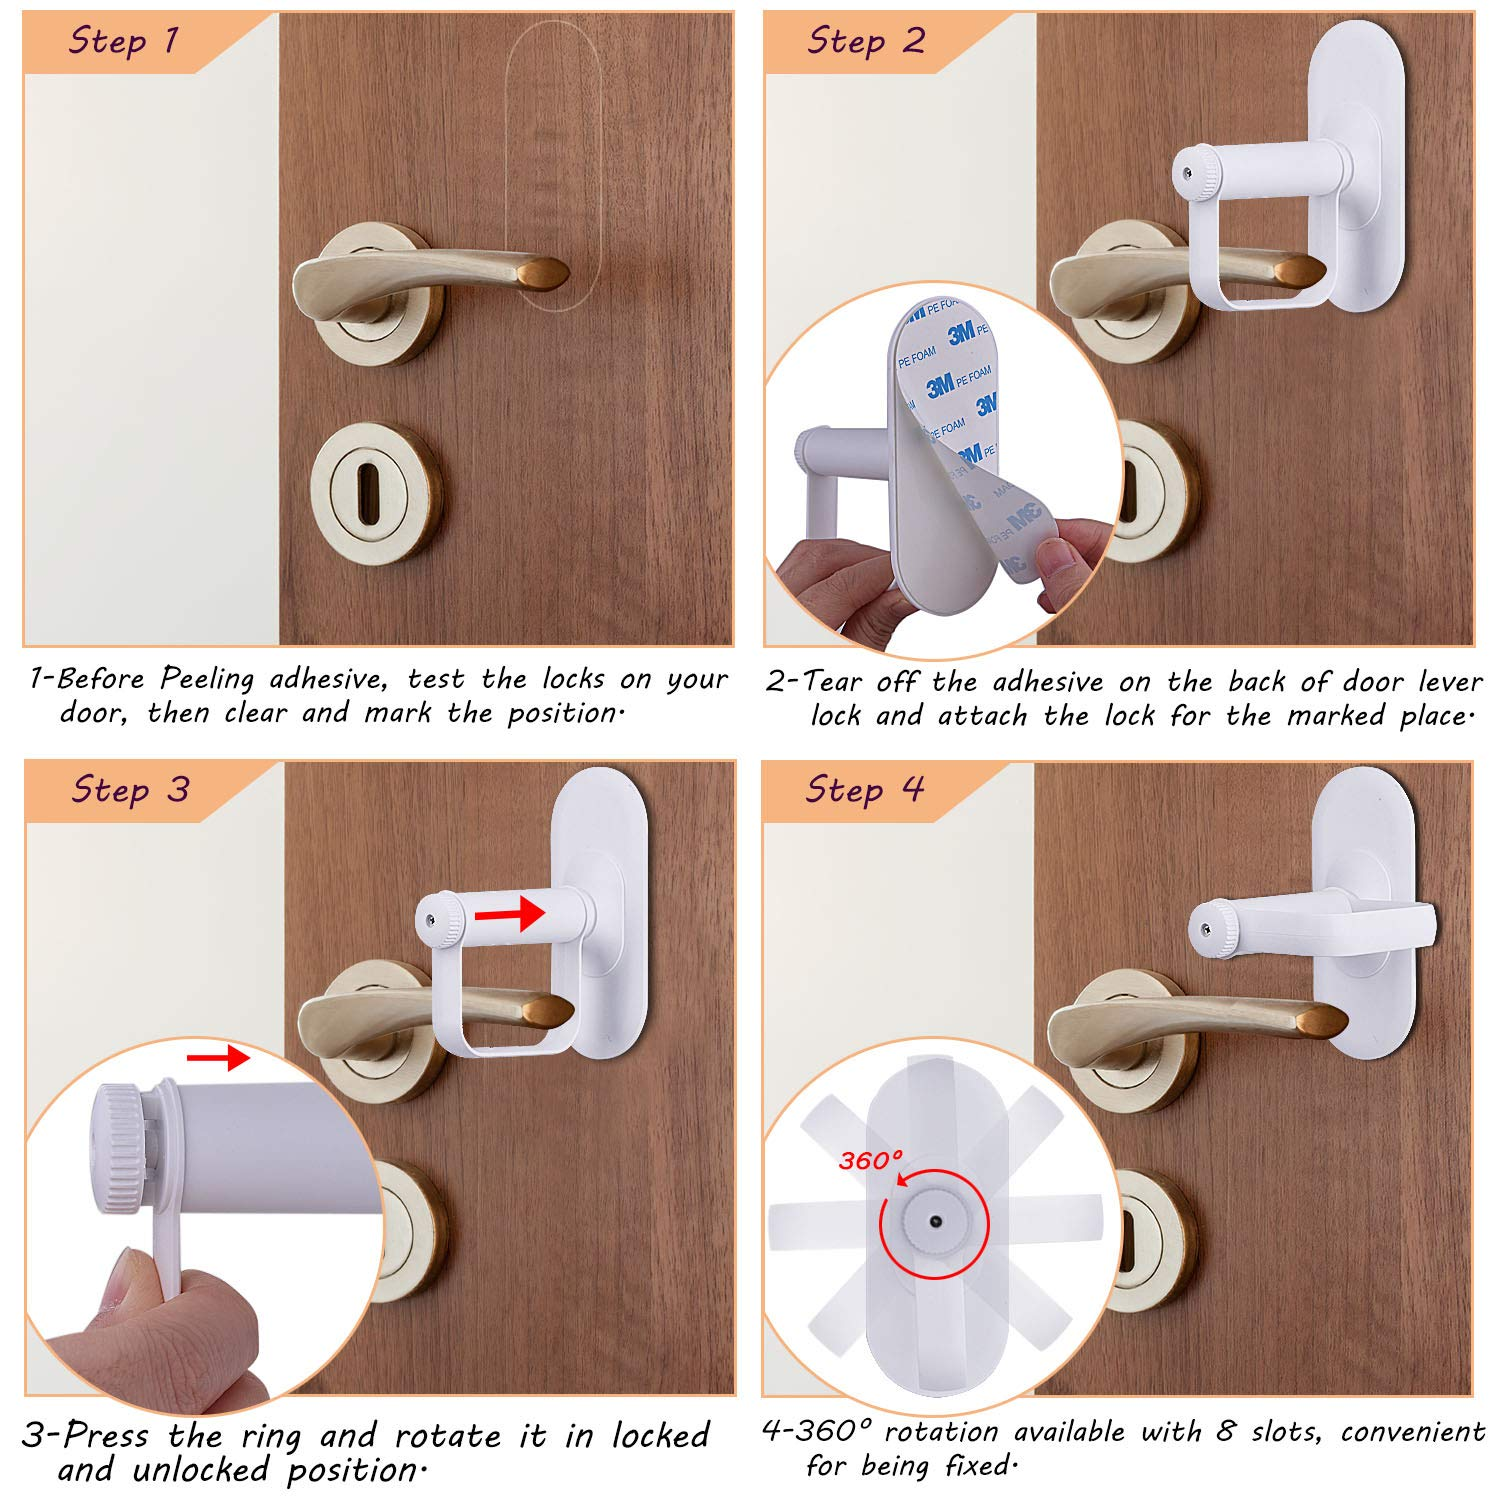 Child//Pets Proof Door Handle Lock with 3M Adhesive Child Safety Locks by AIRSPO Door Lever Lock 2 Pack